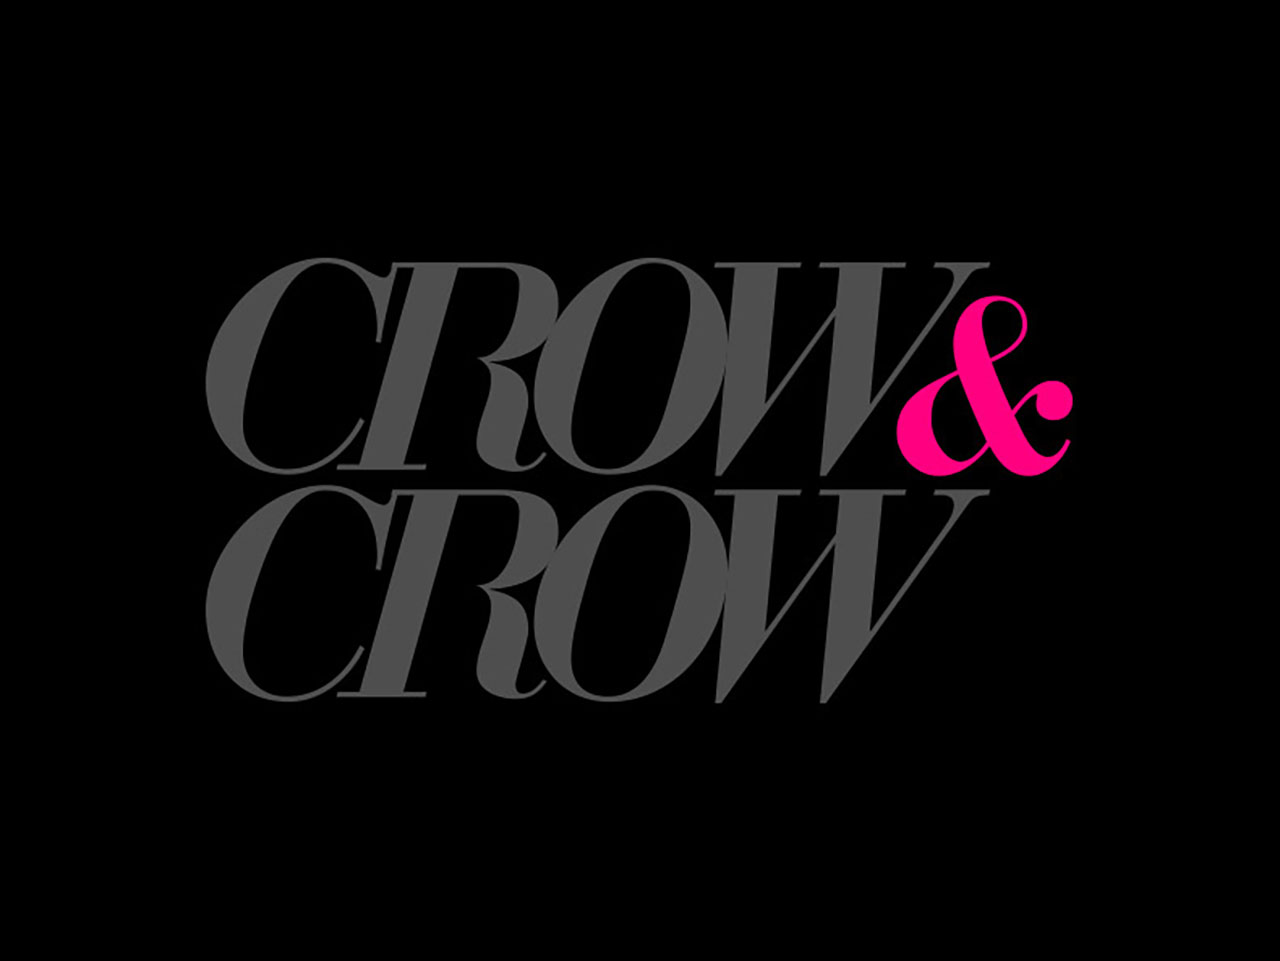 logotipo crow and crow